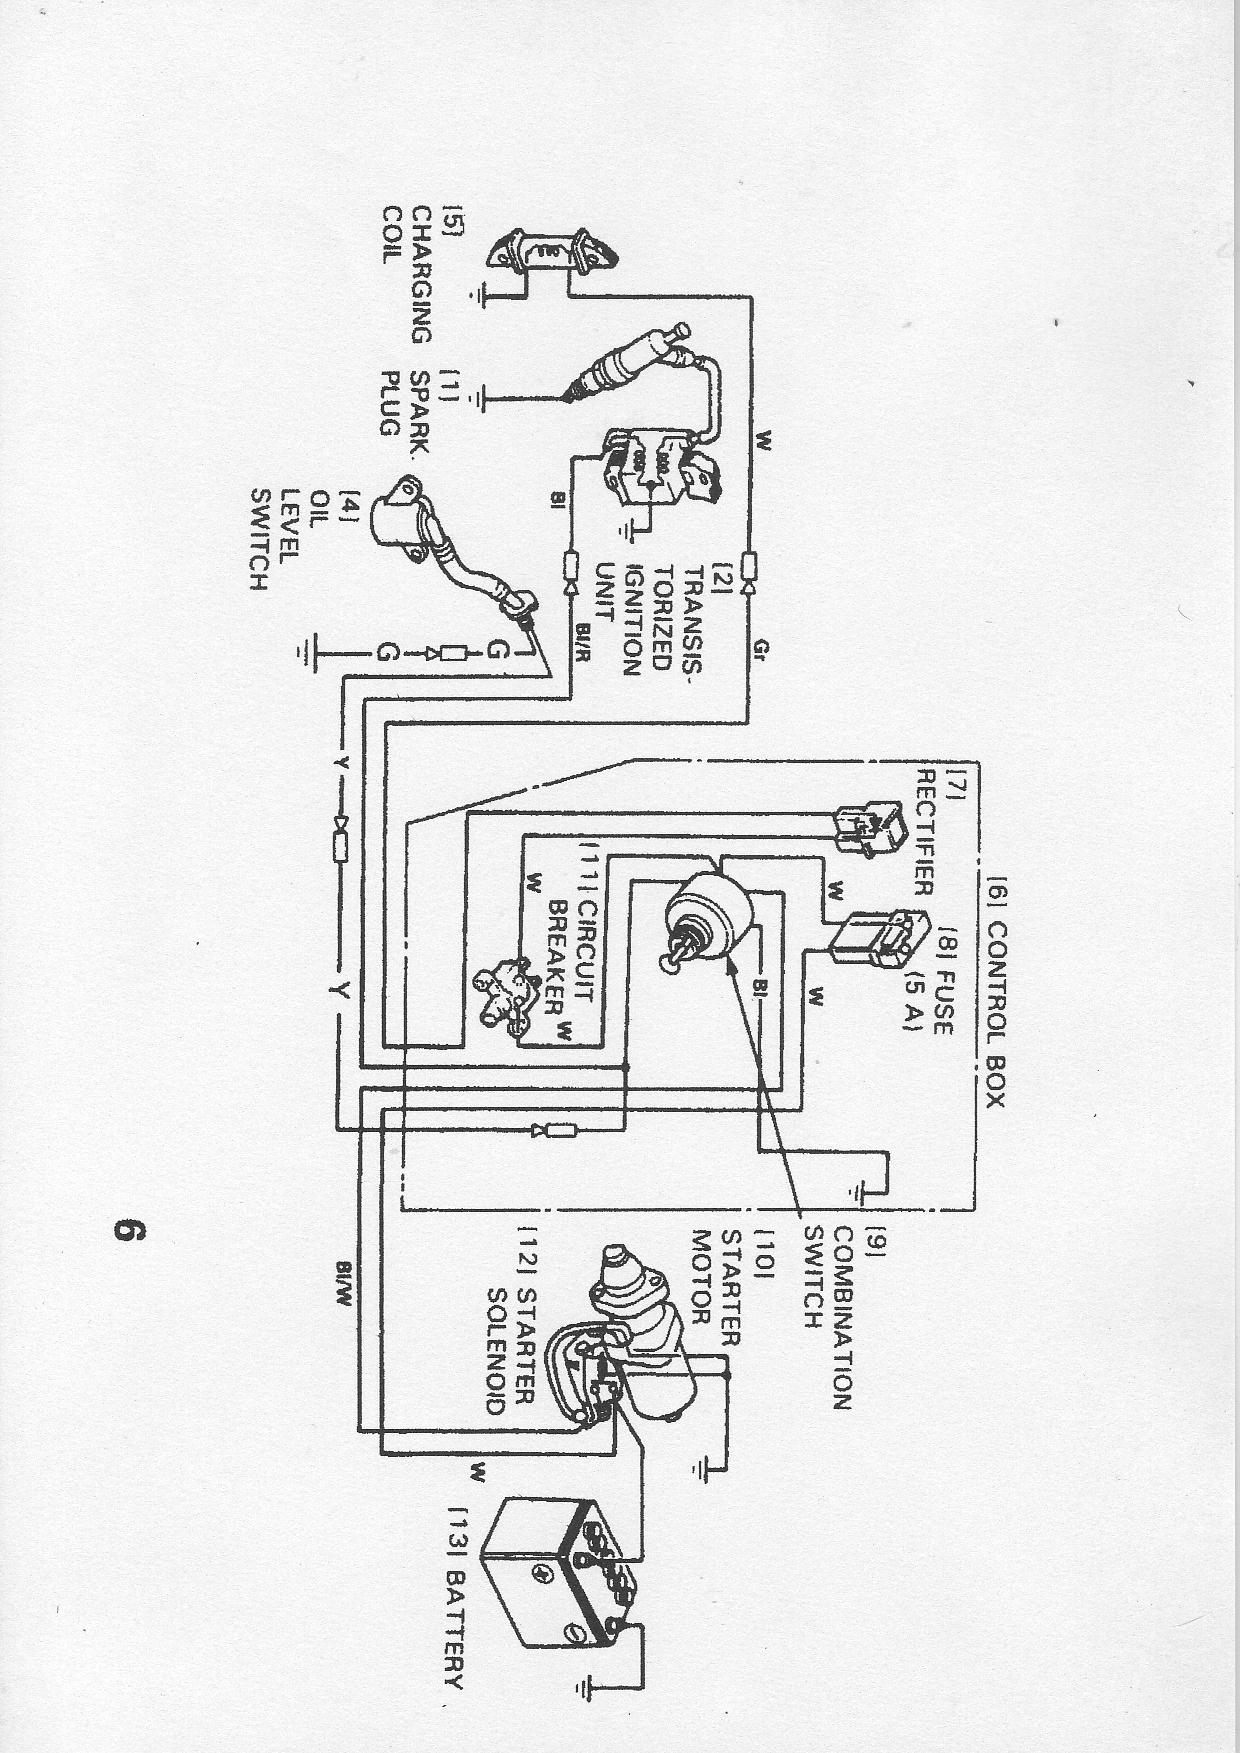 Honda Gx200 Electric Start Wiring Diagram